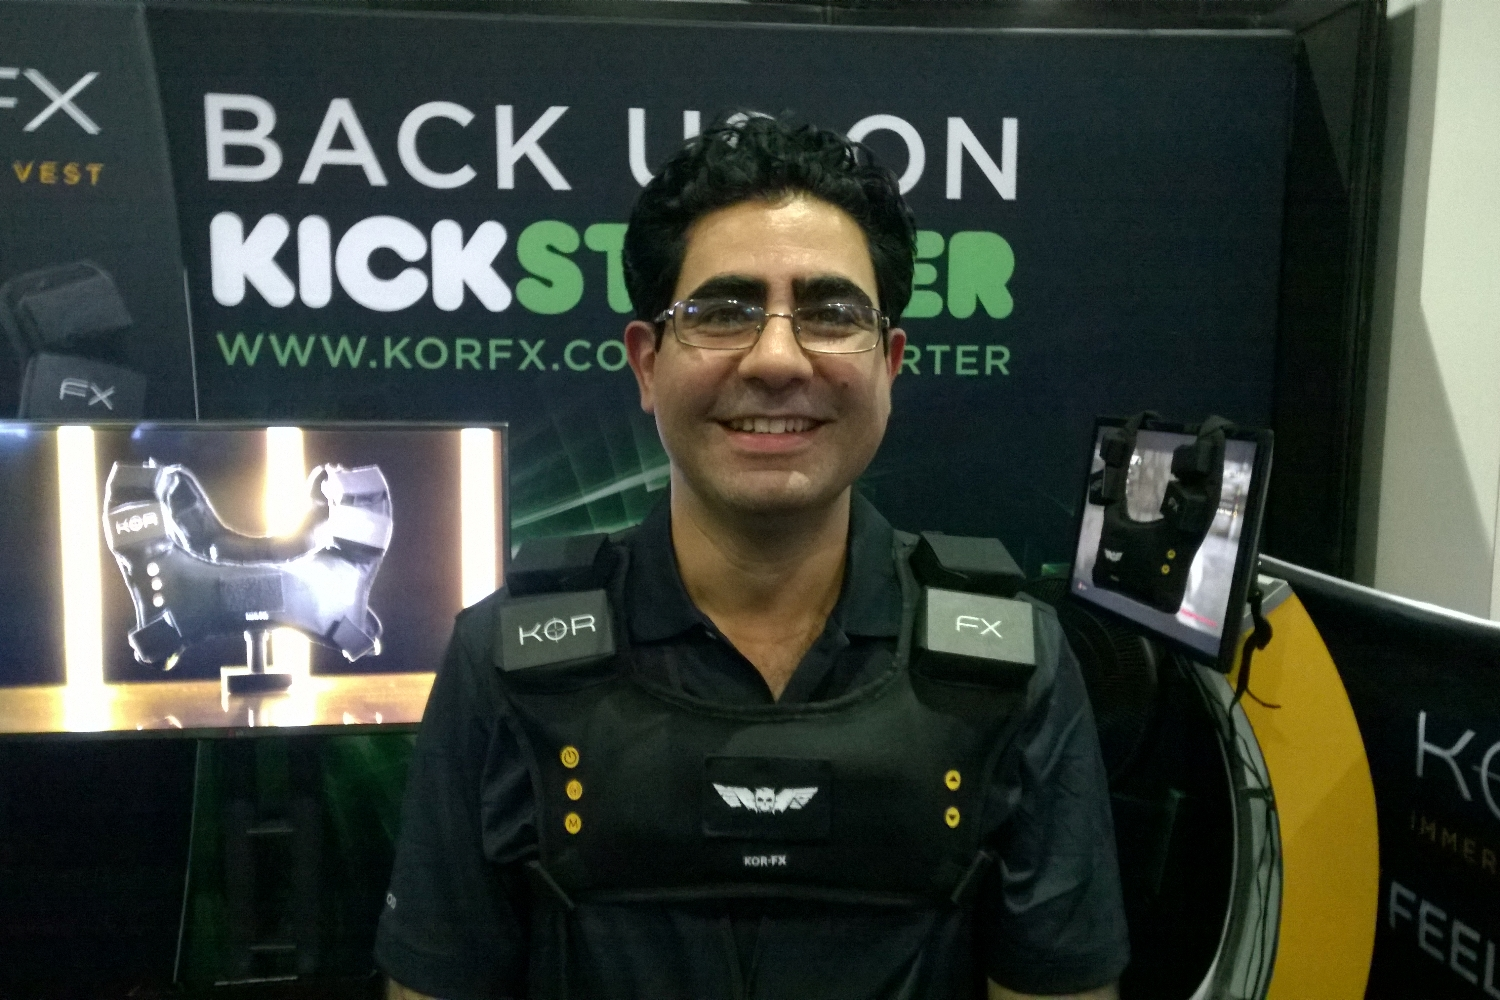 Shahriar Afshar, President and Founder of Immerz, wears the KOR-FX haptic gaming vest at E3 2014.